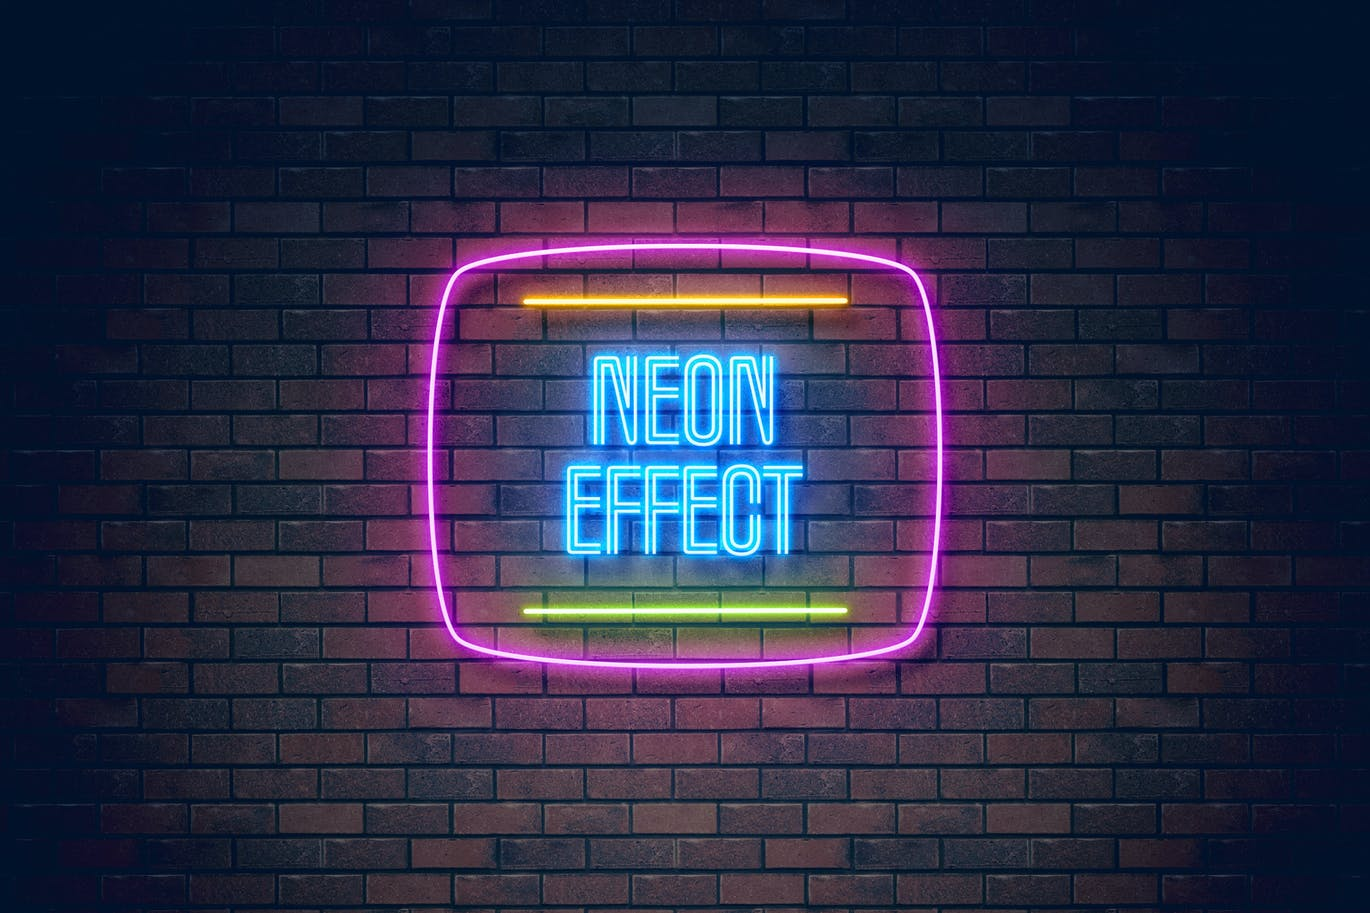 Neon Light Effect By Erigonn On Envato Elements